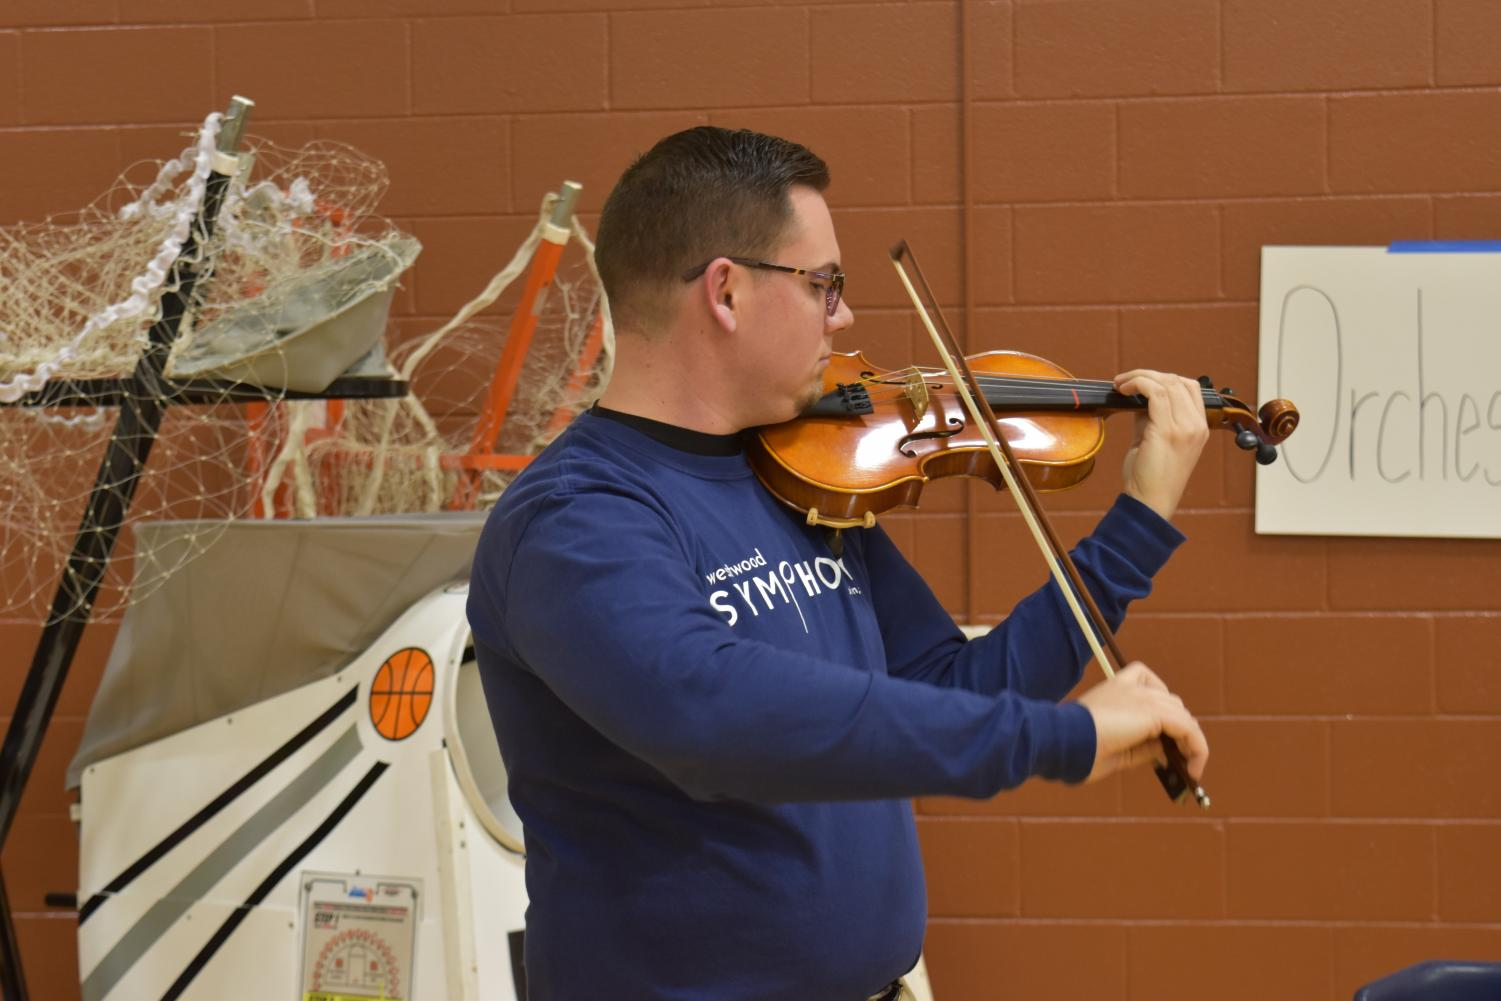 To+demonstrate+the+orchestra+program%2C+Mr.+Justin+Anderson+plays+viola.+Mr.+Anderson+is+the+Associate+Orchestra+Director+at+Westwood.